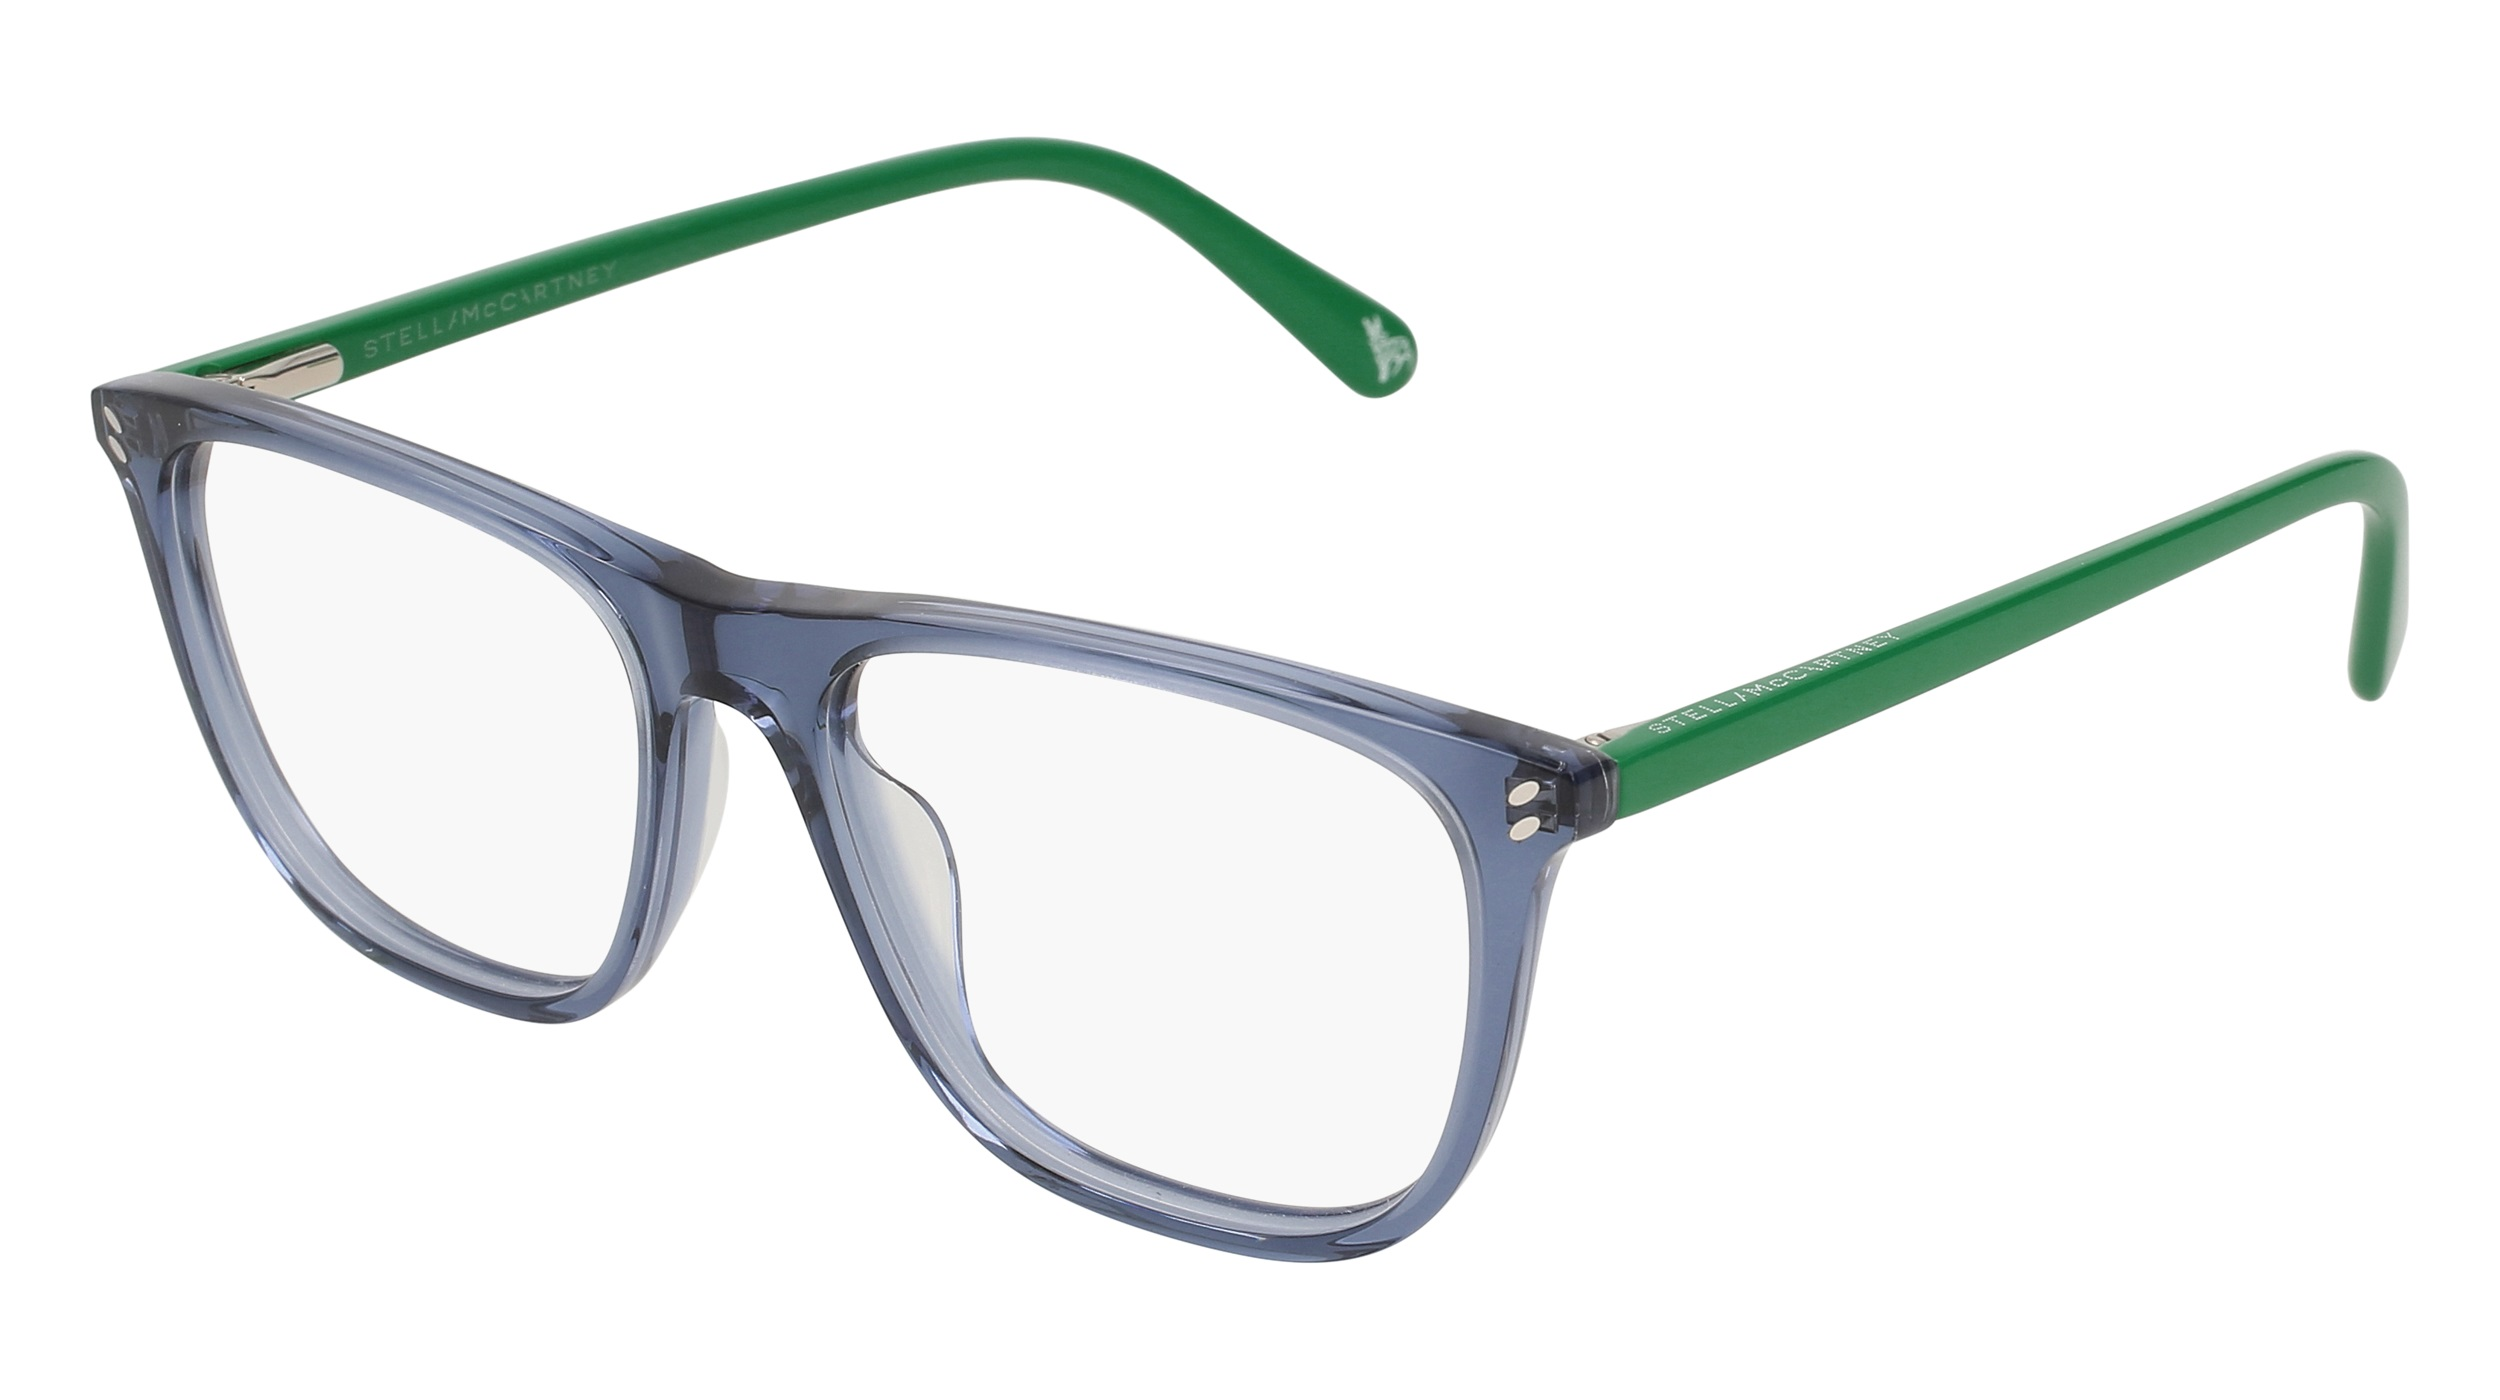 4d45f04e600a Prescription Eye Glasses, Frames and Lenses for Kids and Teens. Buy Online,  Coupons, Free Shipping - Optiwow